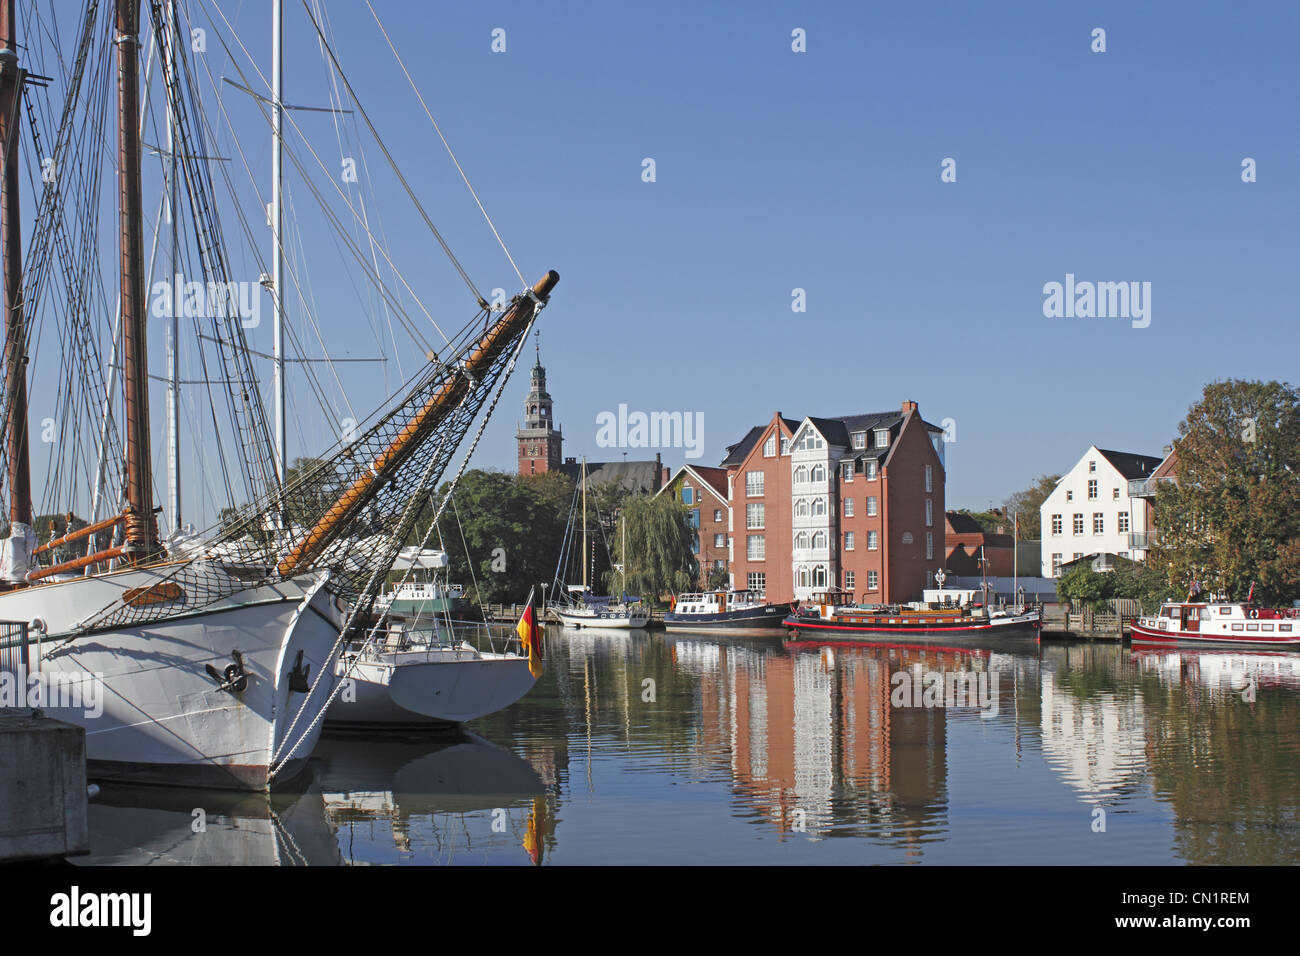 Leer Harbor Ship - Stock Image